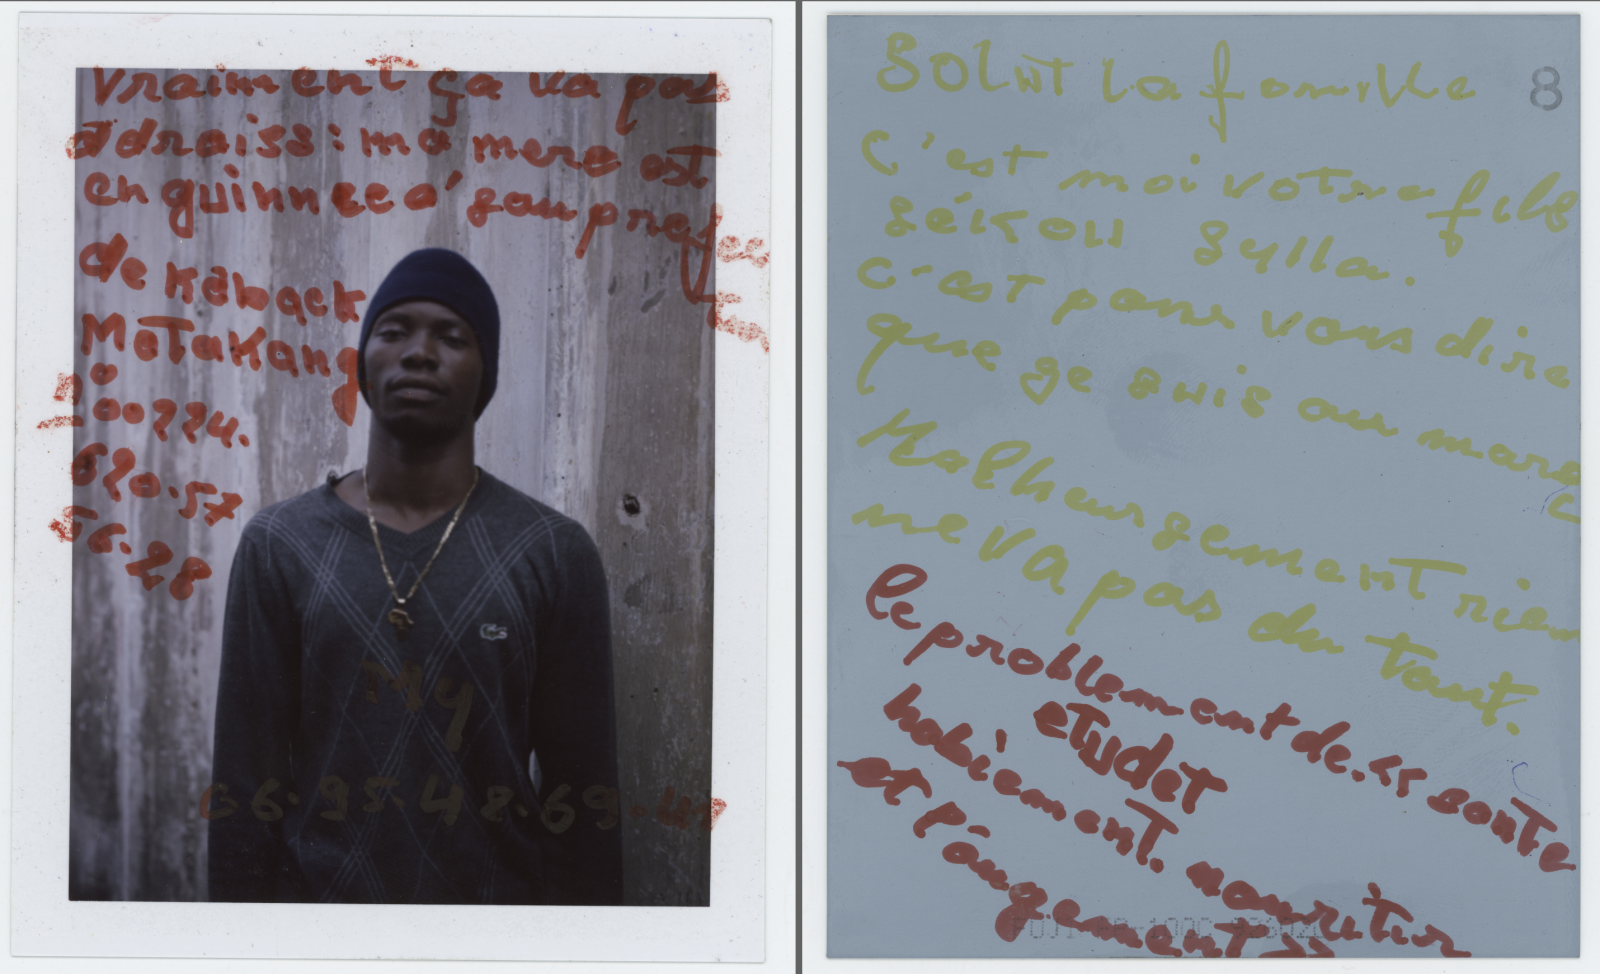 Honestly, everything is bad over here. Address: My mom is in Guinea at the Kabqck Motakang prefecture Number 00224 620575628 Hey Fam, it's me. Your son Seikou Sylla. I just wanted to tell you that I'm now in Morocco but unfortunately, nothing works here. The problem is that there is no way to study, get clothes, work, housing, food or anything.